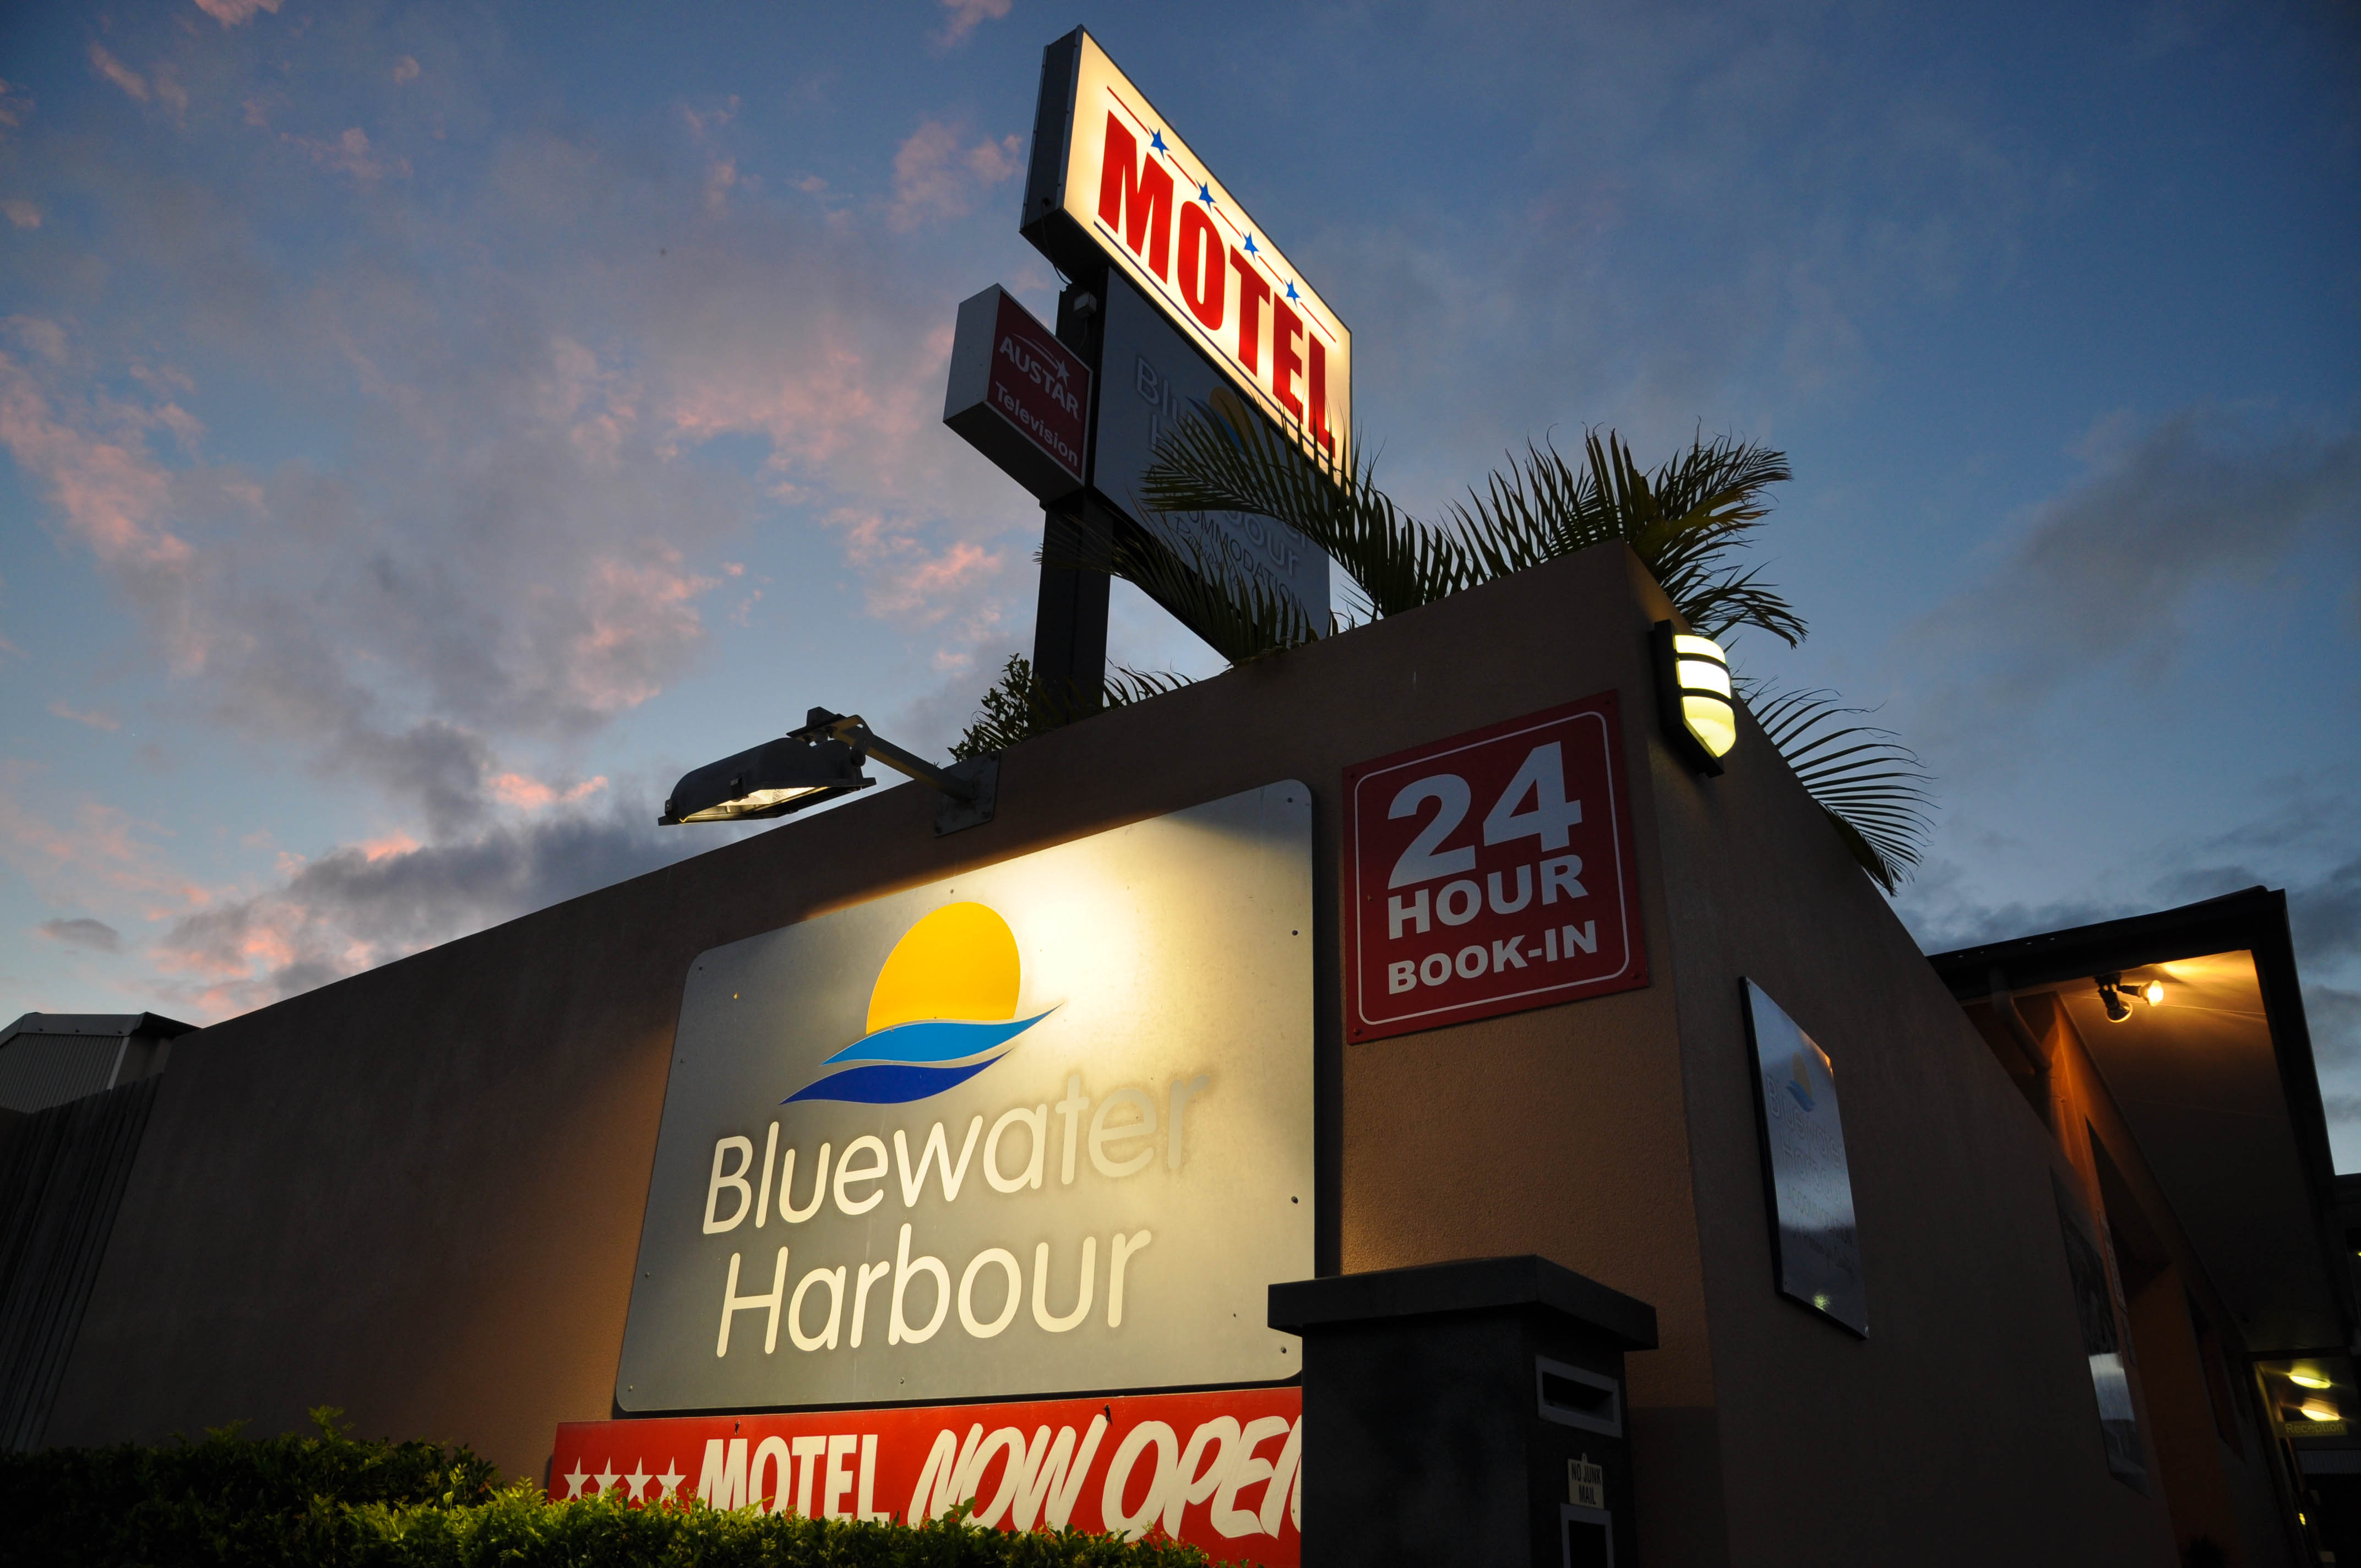 1 Powell street Bowen BlueWater Harbour Motel